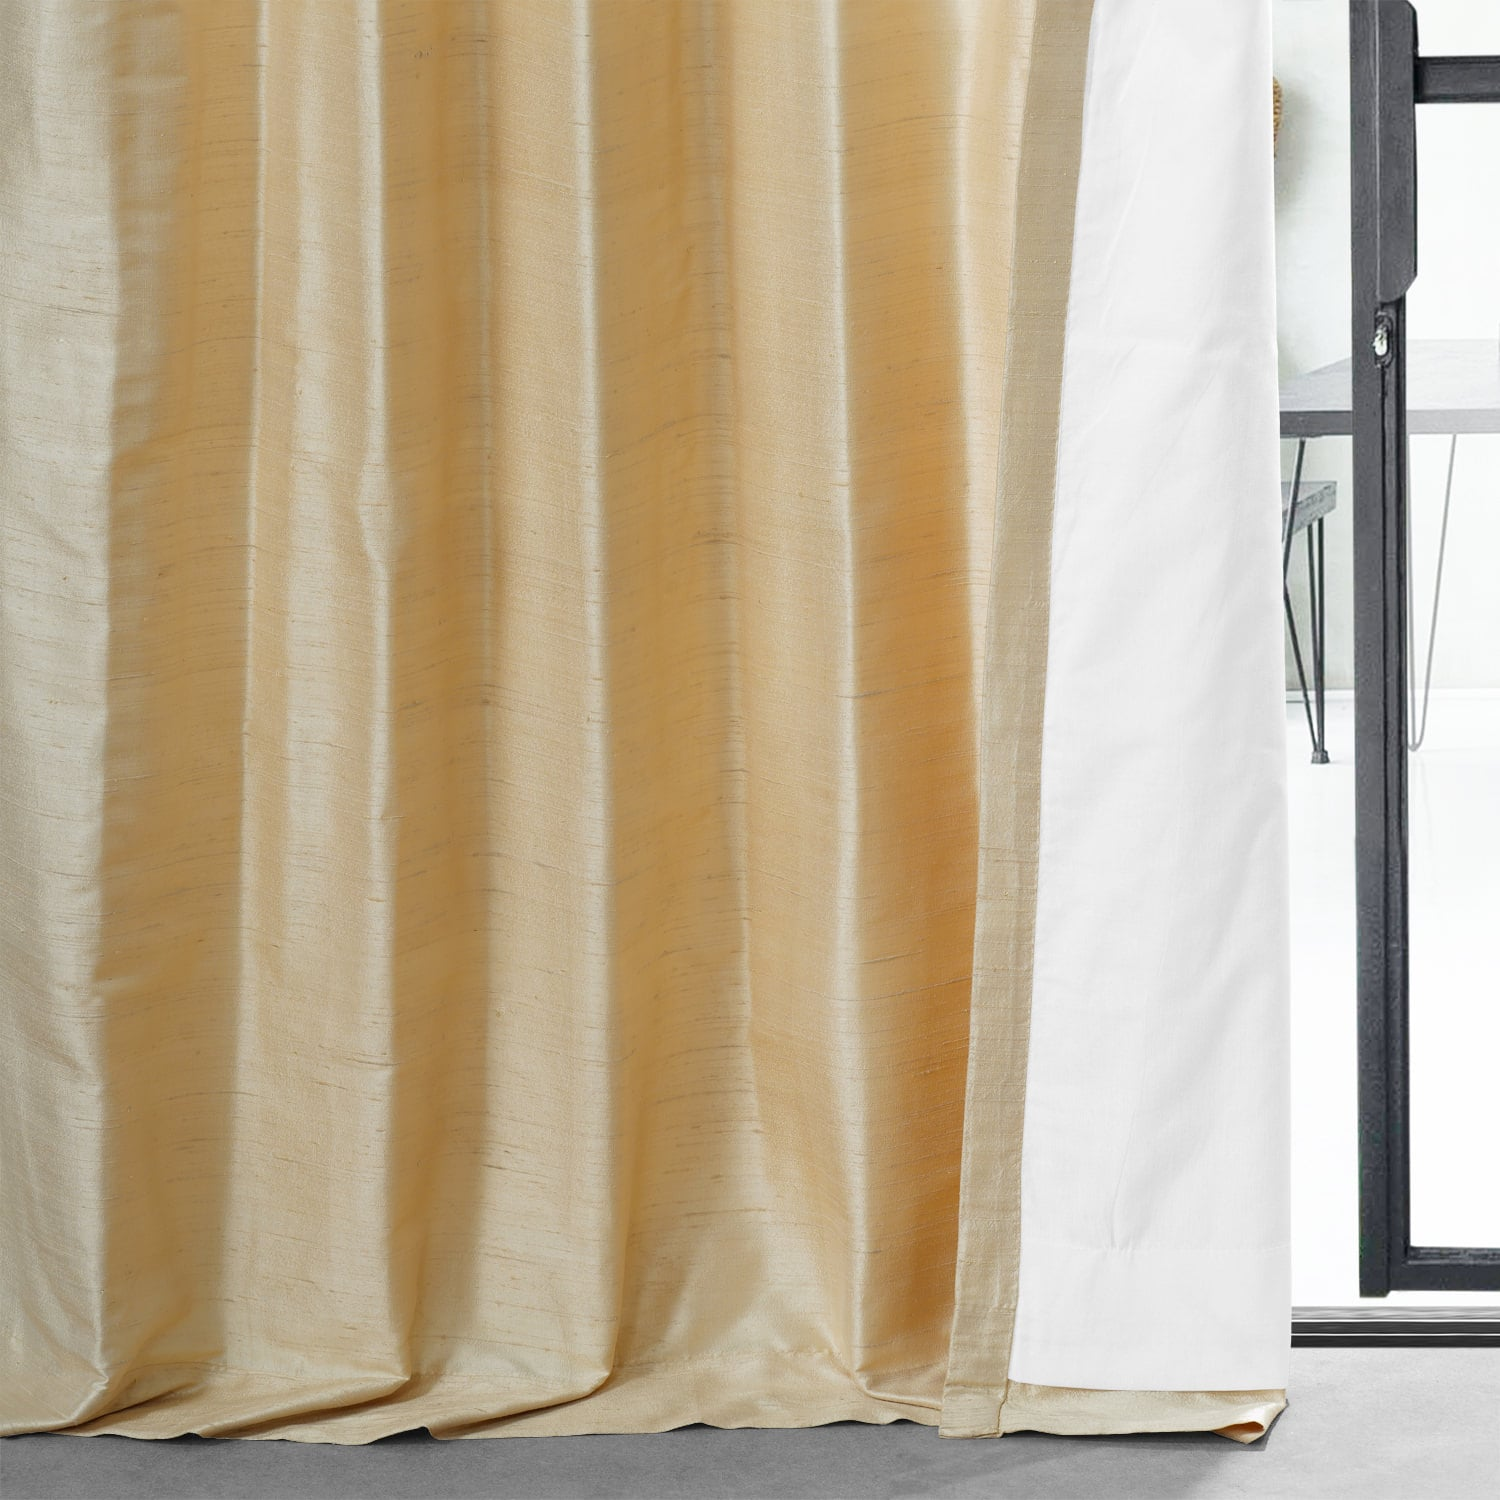 Sunlit Meadow Textured Dupioni Silk Curtain